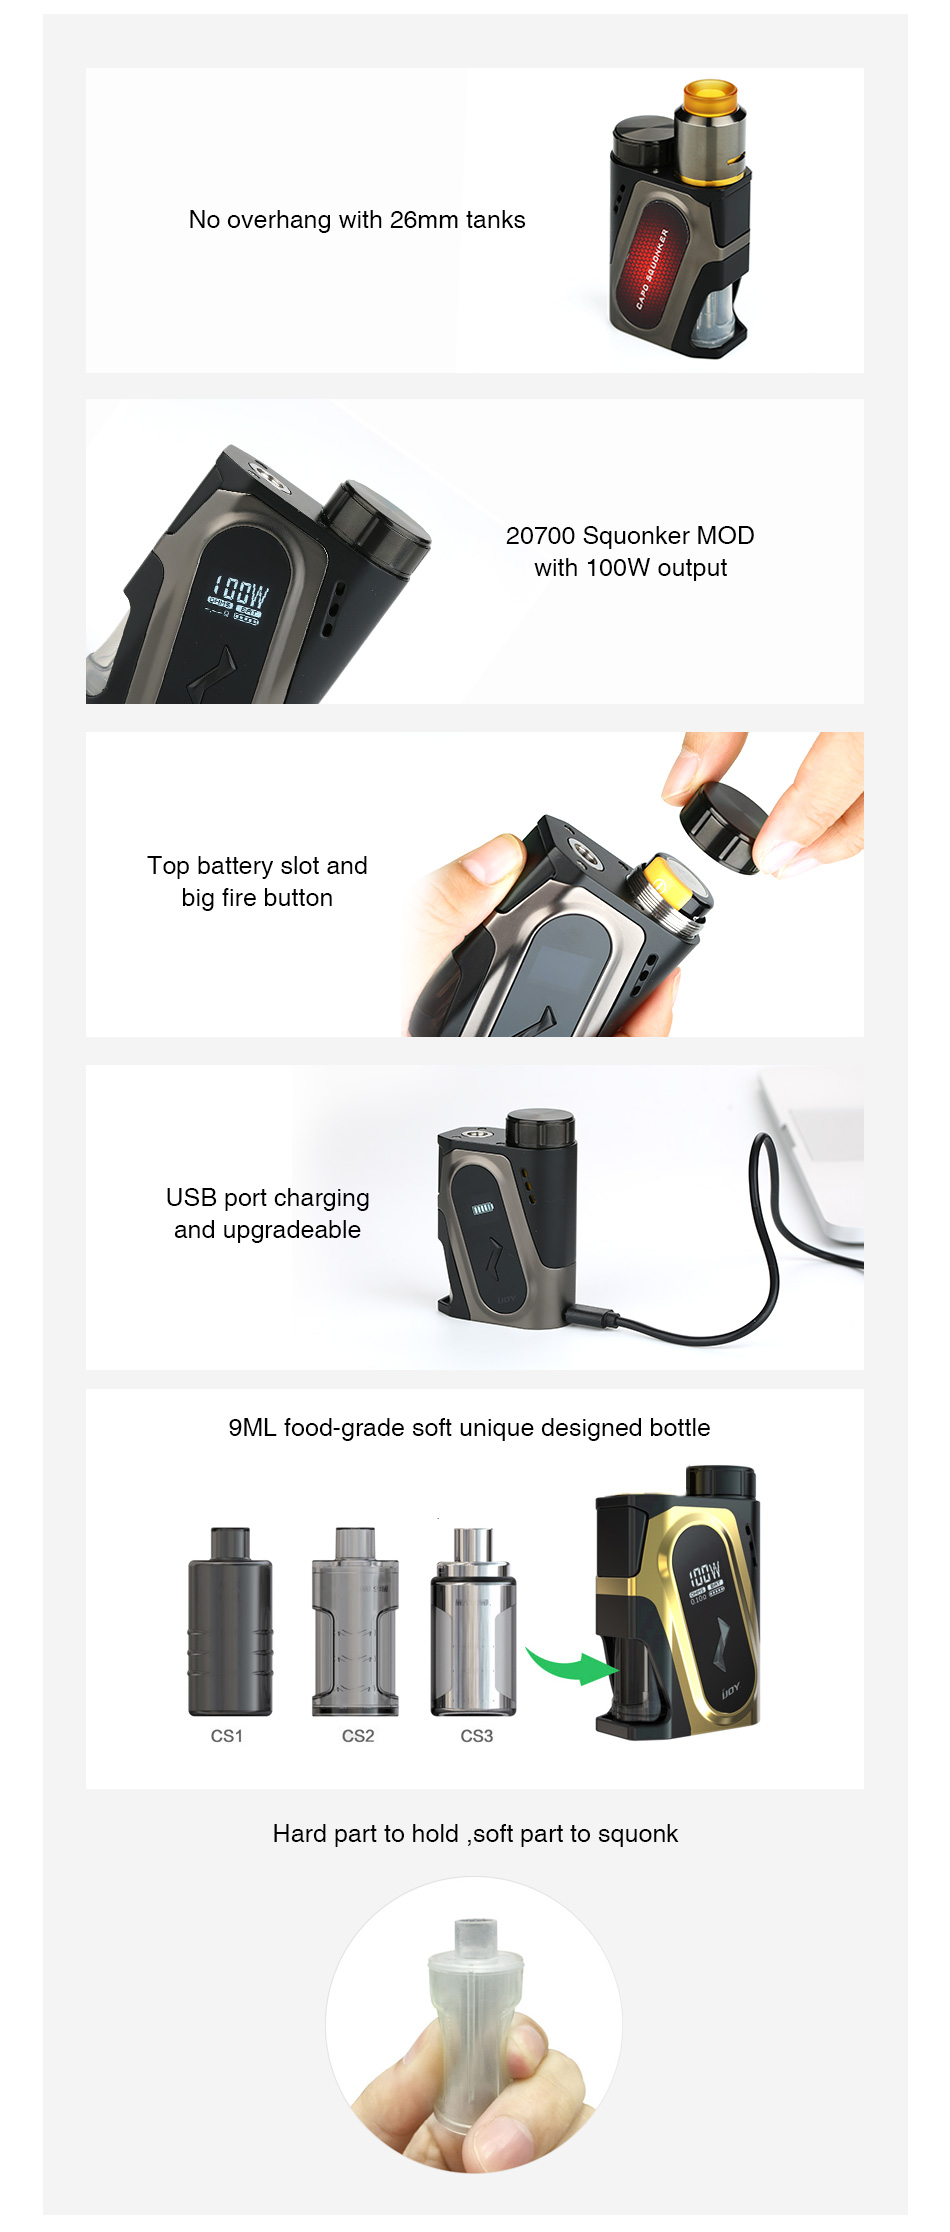 ijoy capo bottom feeder squonk